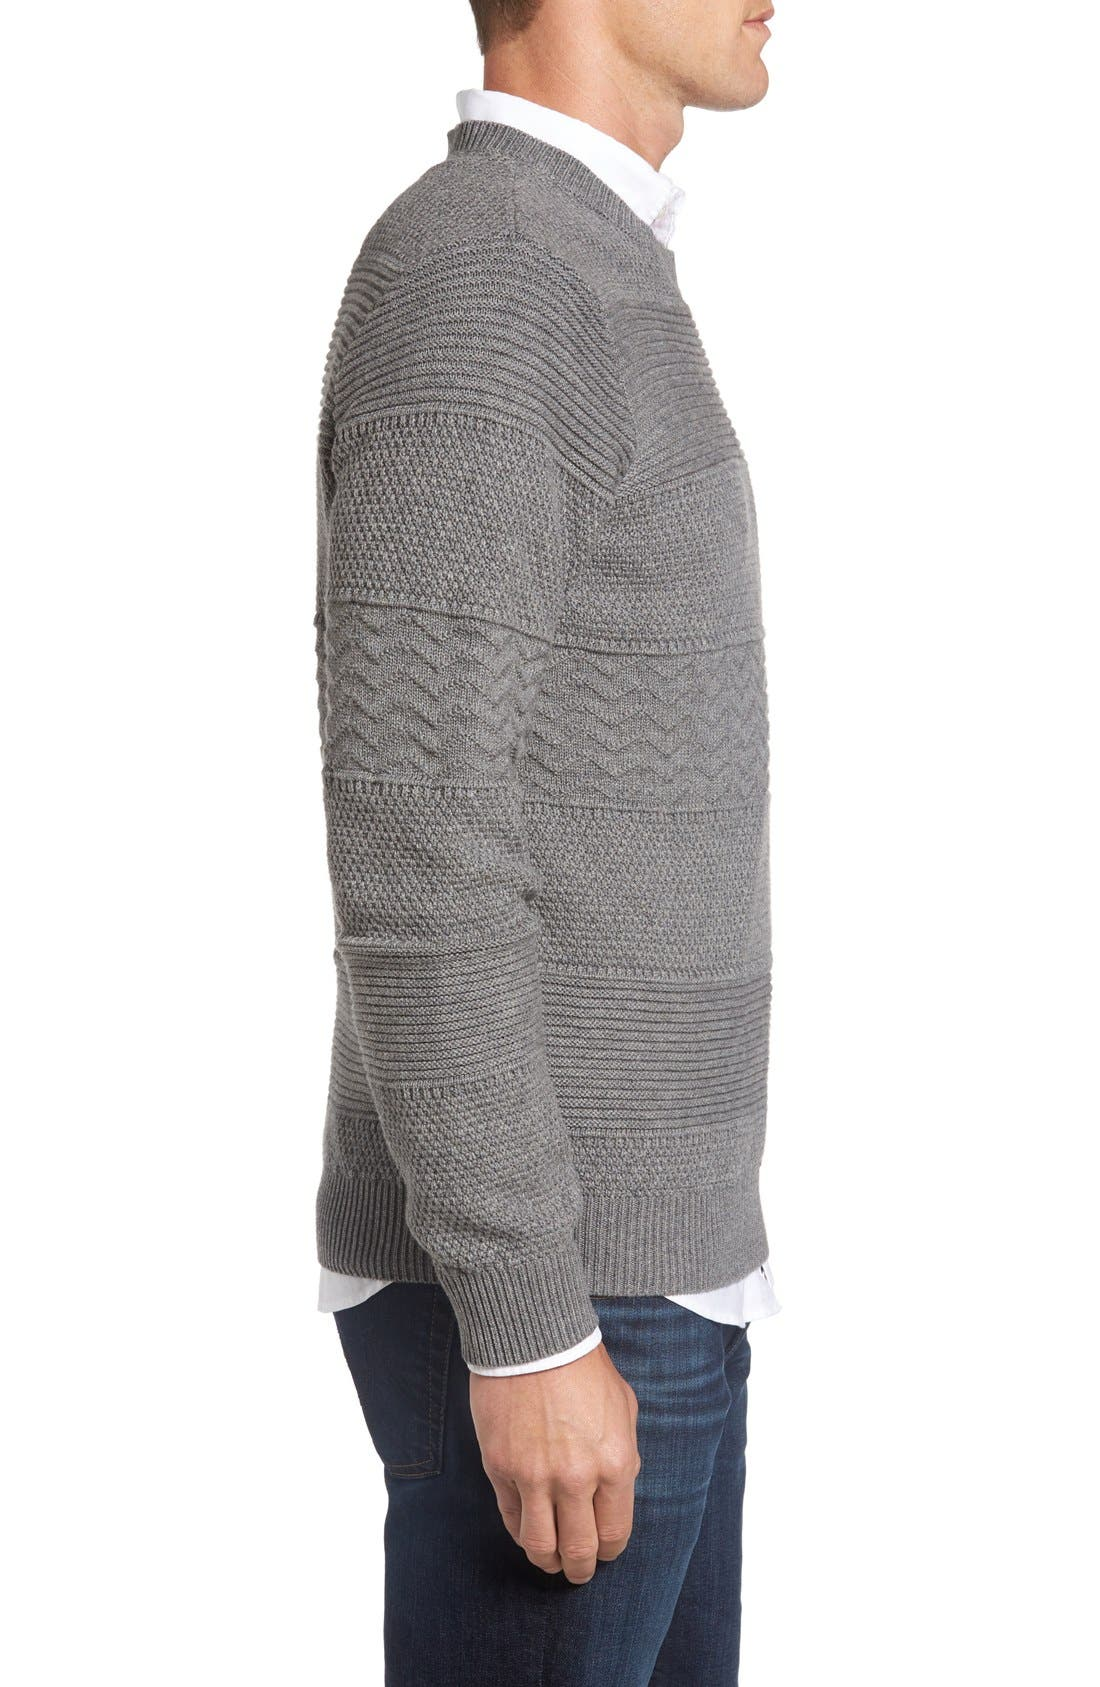 Structure Crewneck Sweater,                             Alternate thumbnail 3, color,                             Grey Melange